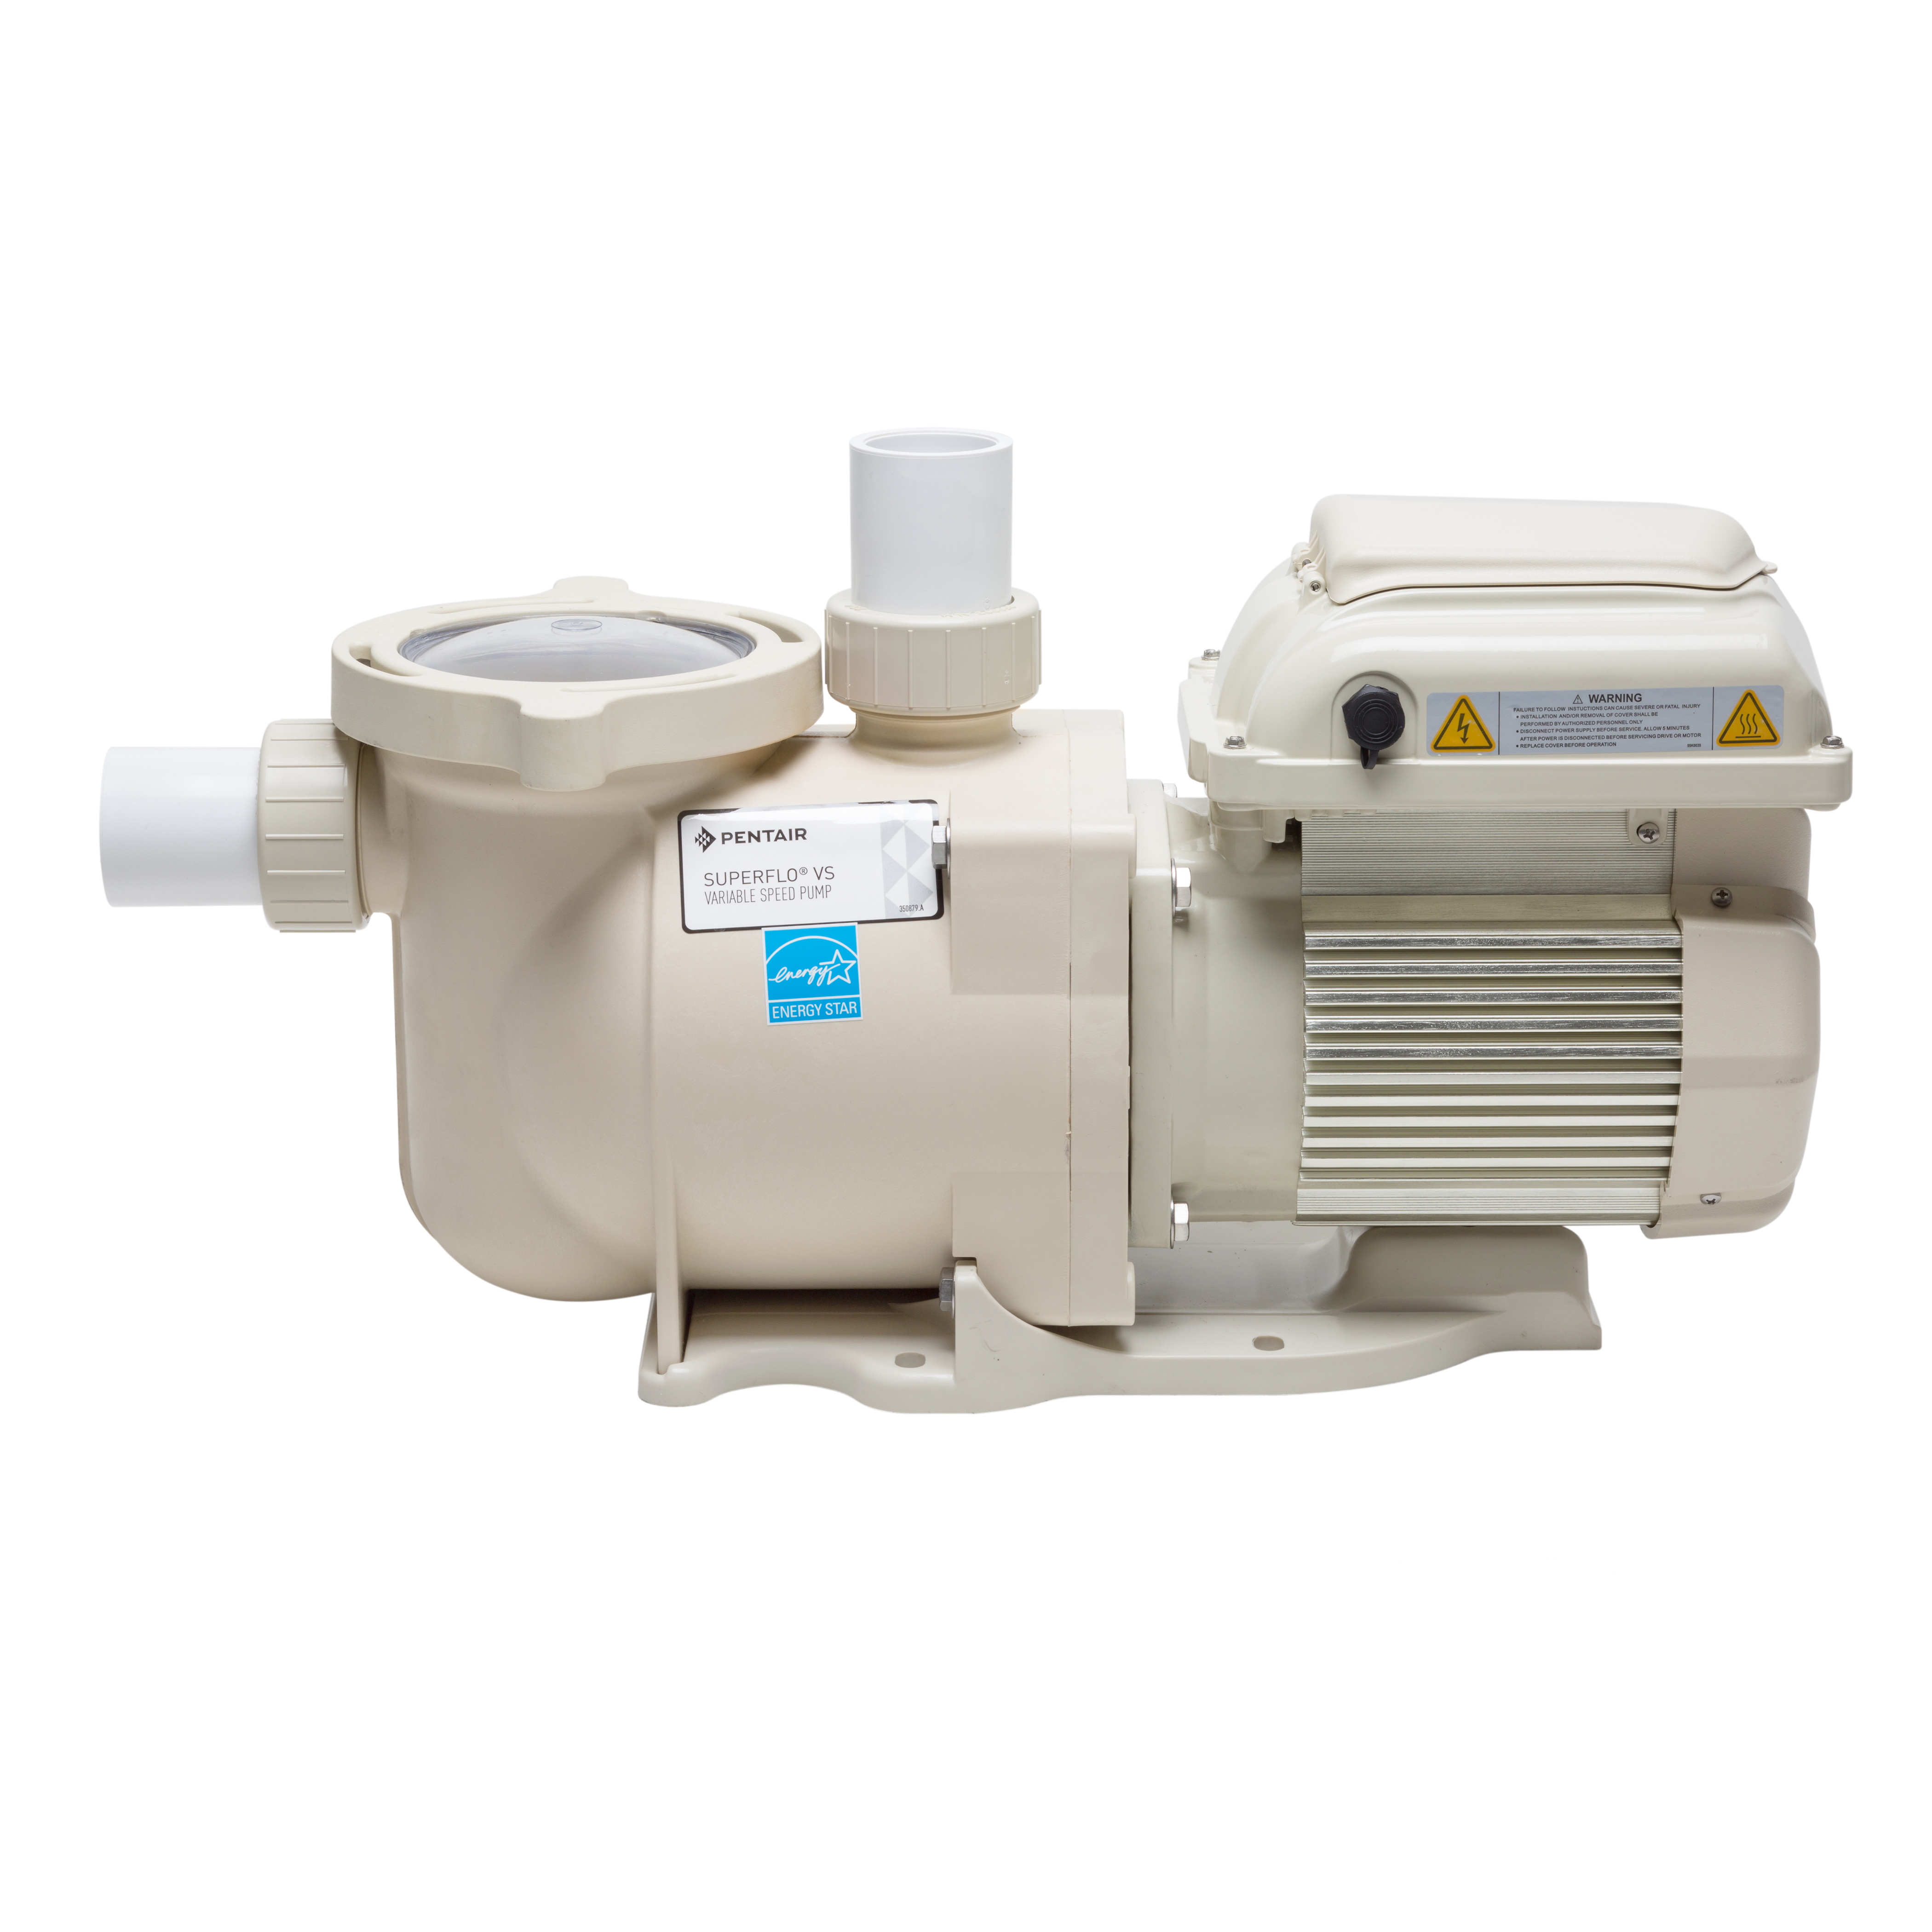 Pentair 342001 SuperFlo VS Energy Efficient Variable Speed Pool Pump